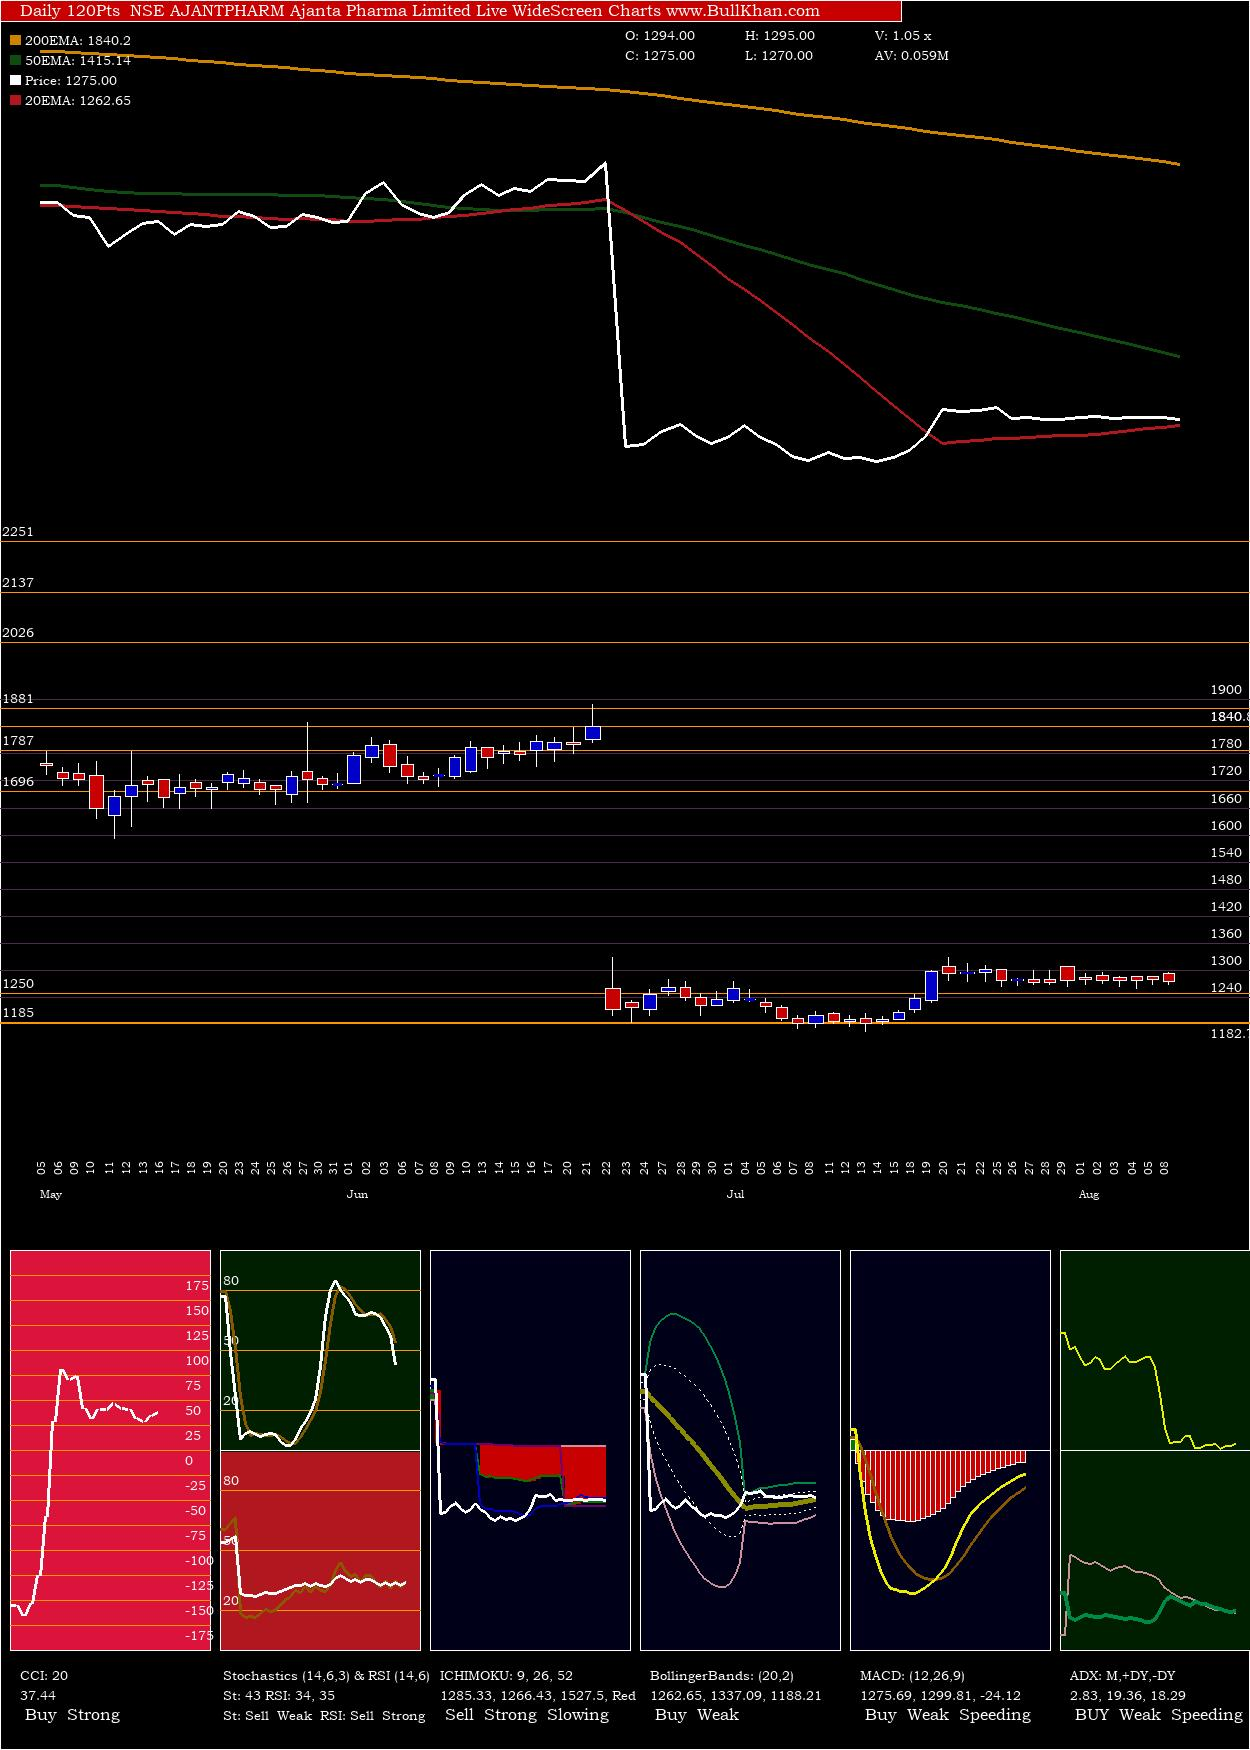 Ajanta Pharma charts and indicators